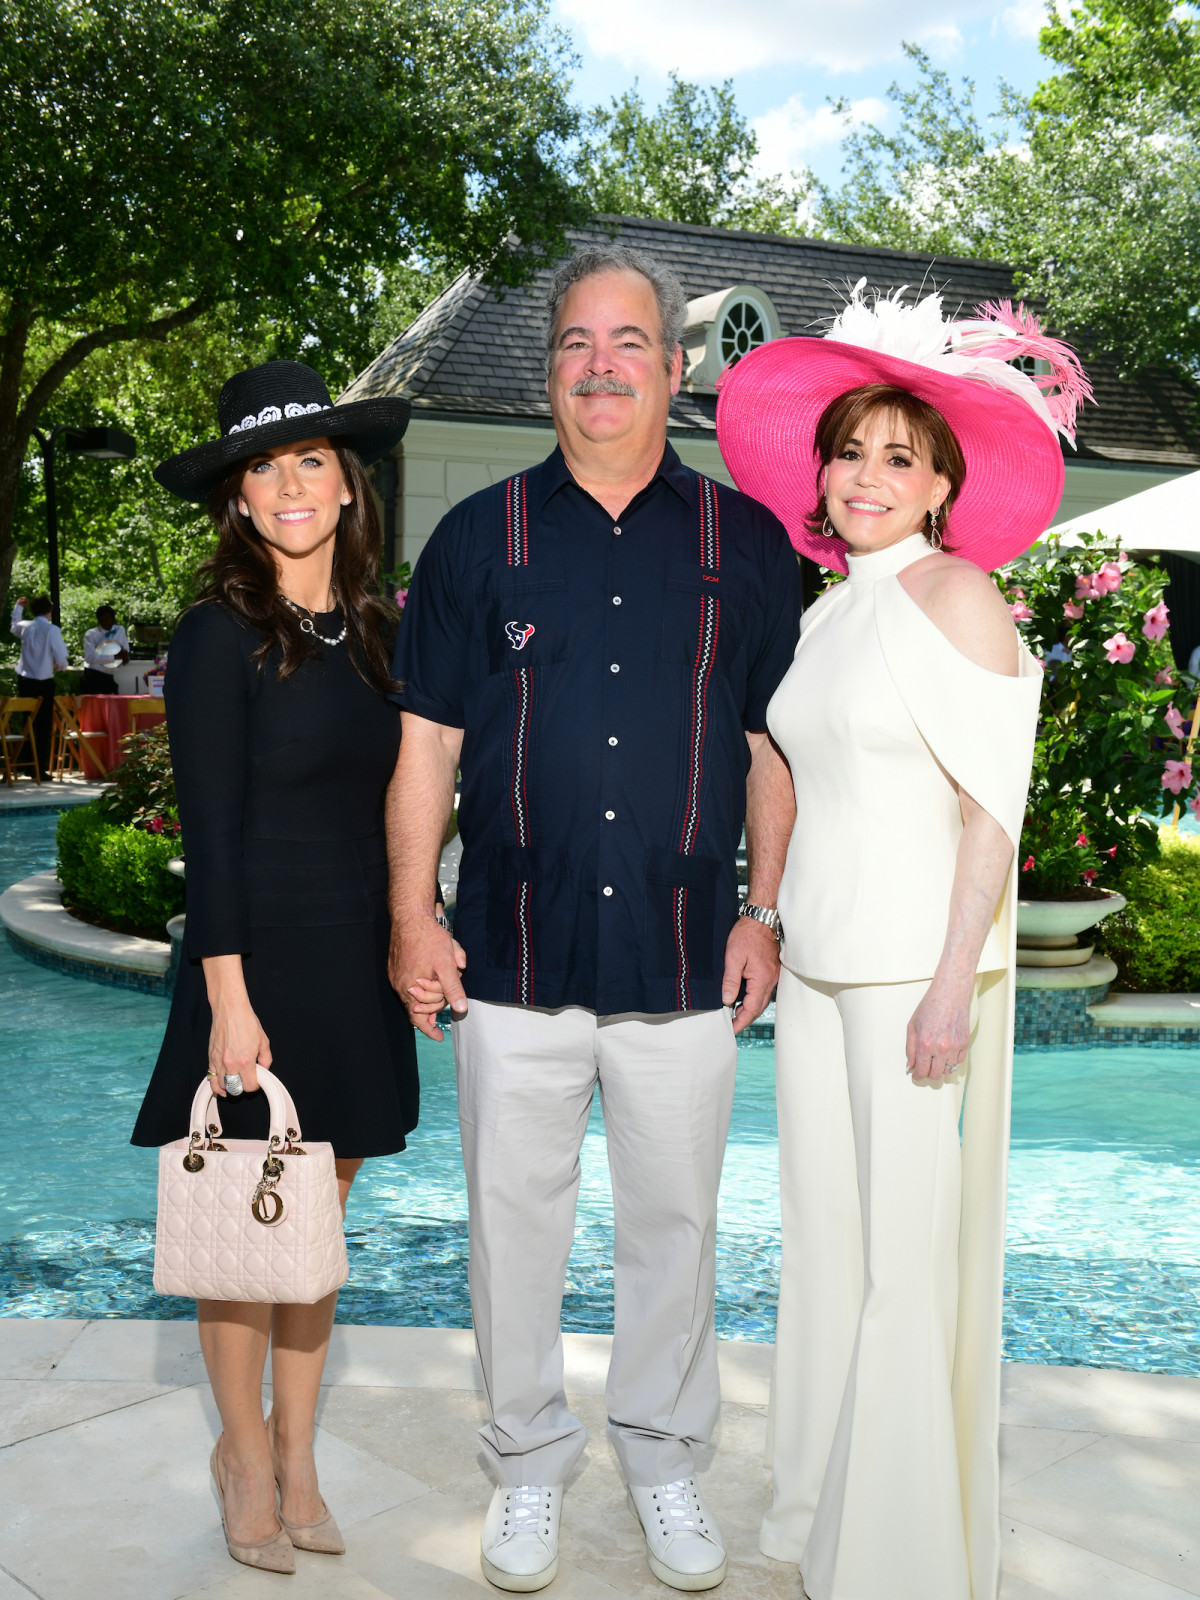 Hats, Hearts & Horseshoes 2019 Kentucky Derby Tilman Fertitta